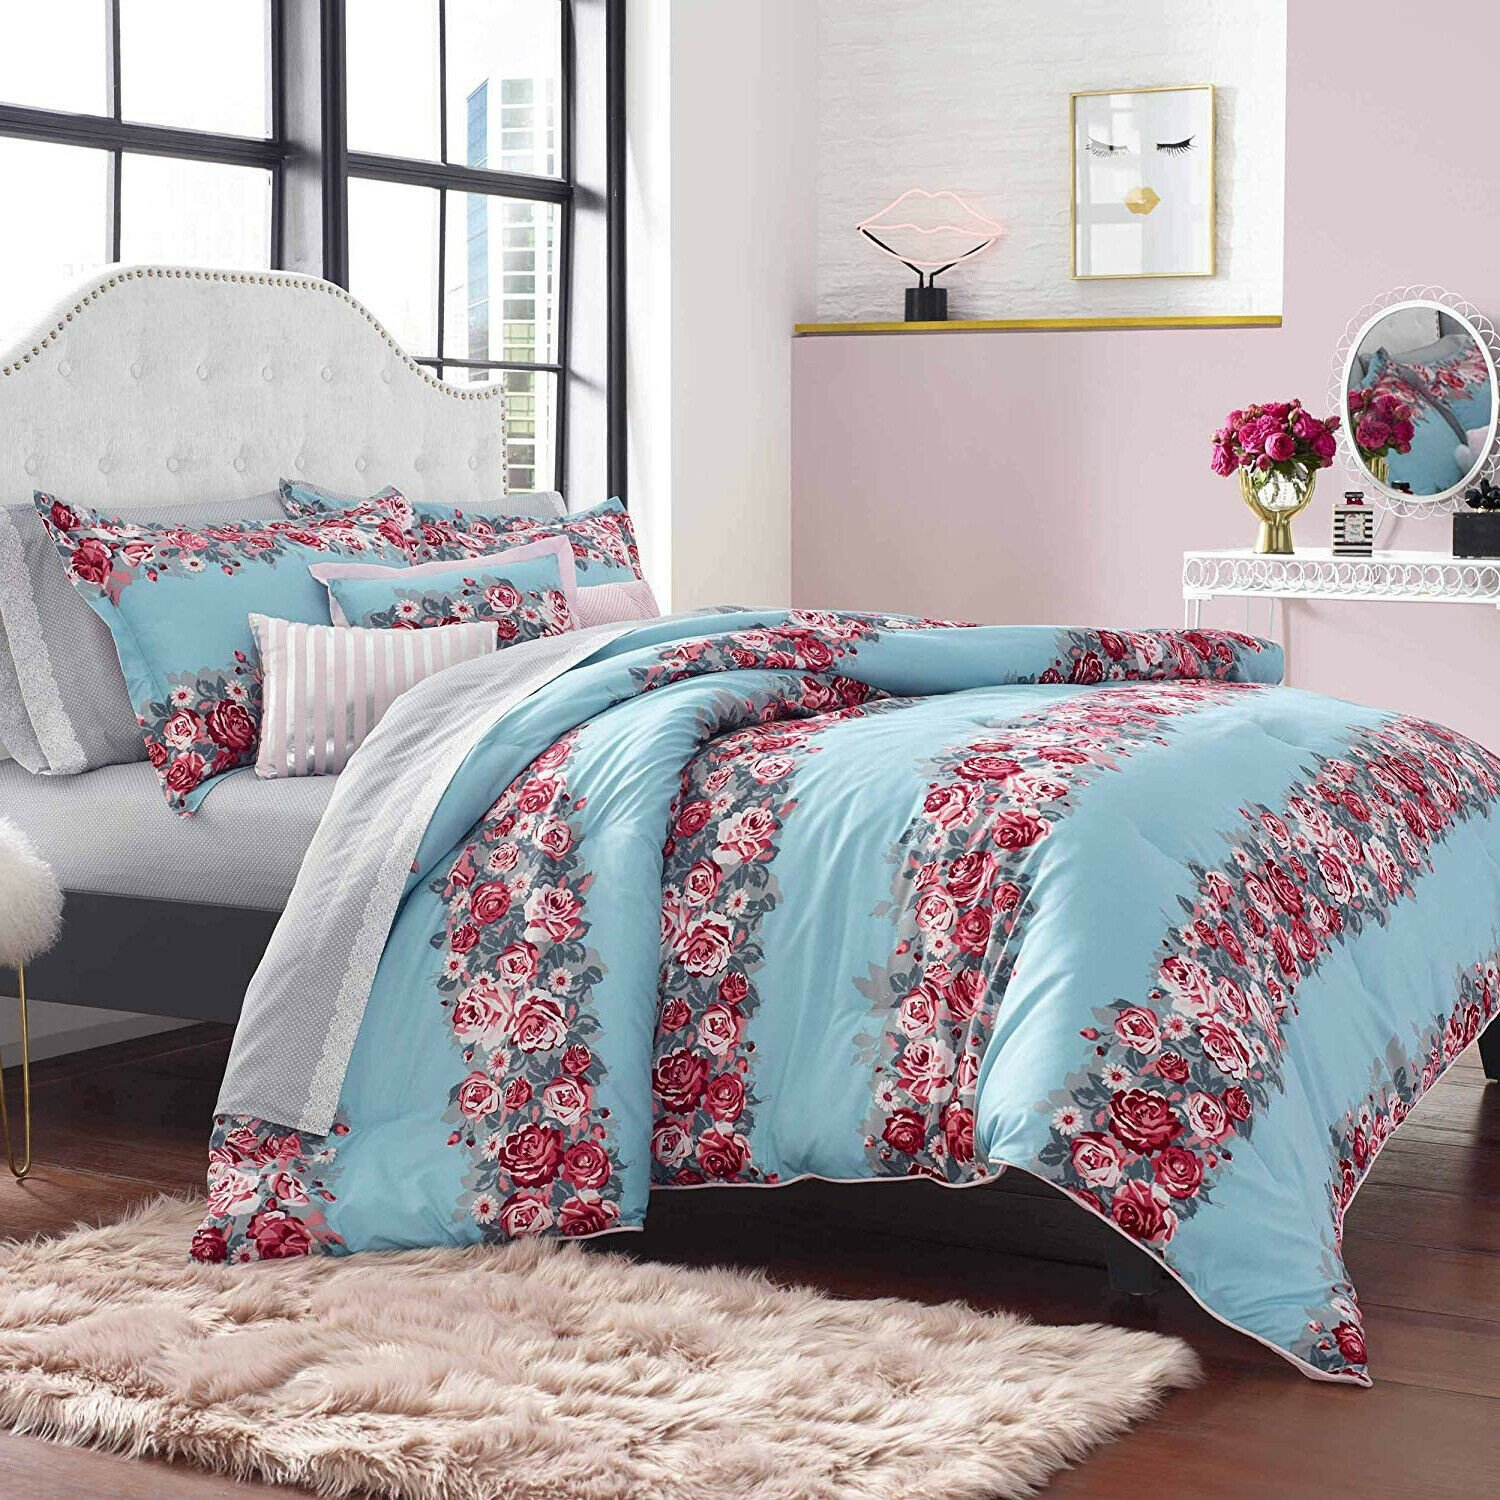 King Bedroom Comforter Set Elegant Elegant Colorful Pink Blue Floral 6 Pcs King Queen forter